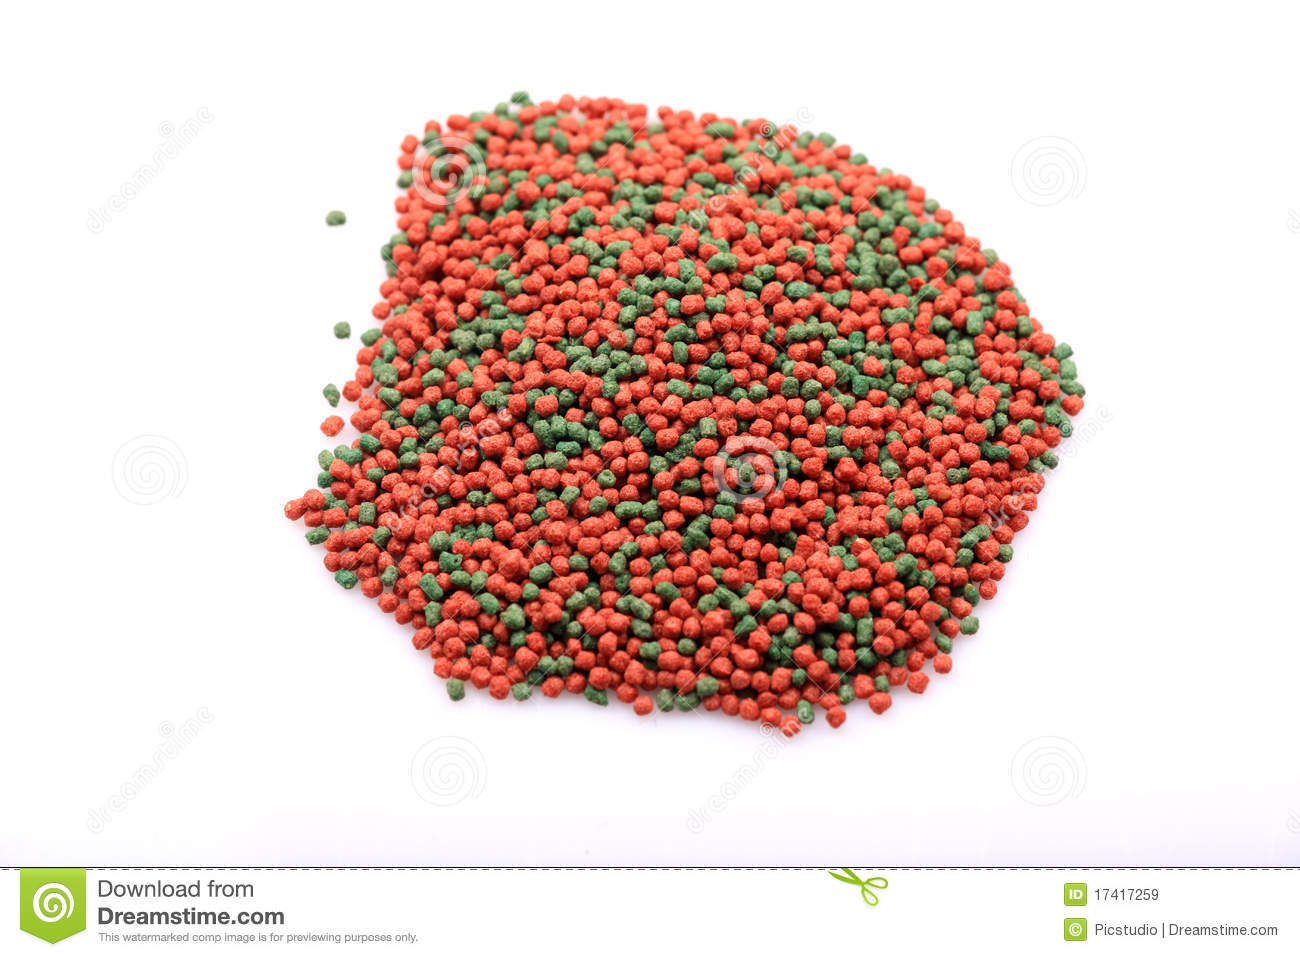 Download Fish food granules stock image. Image of color, isolated - 17417259